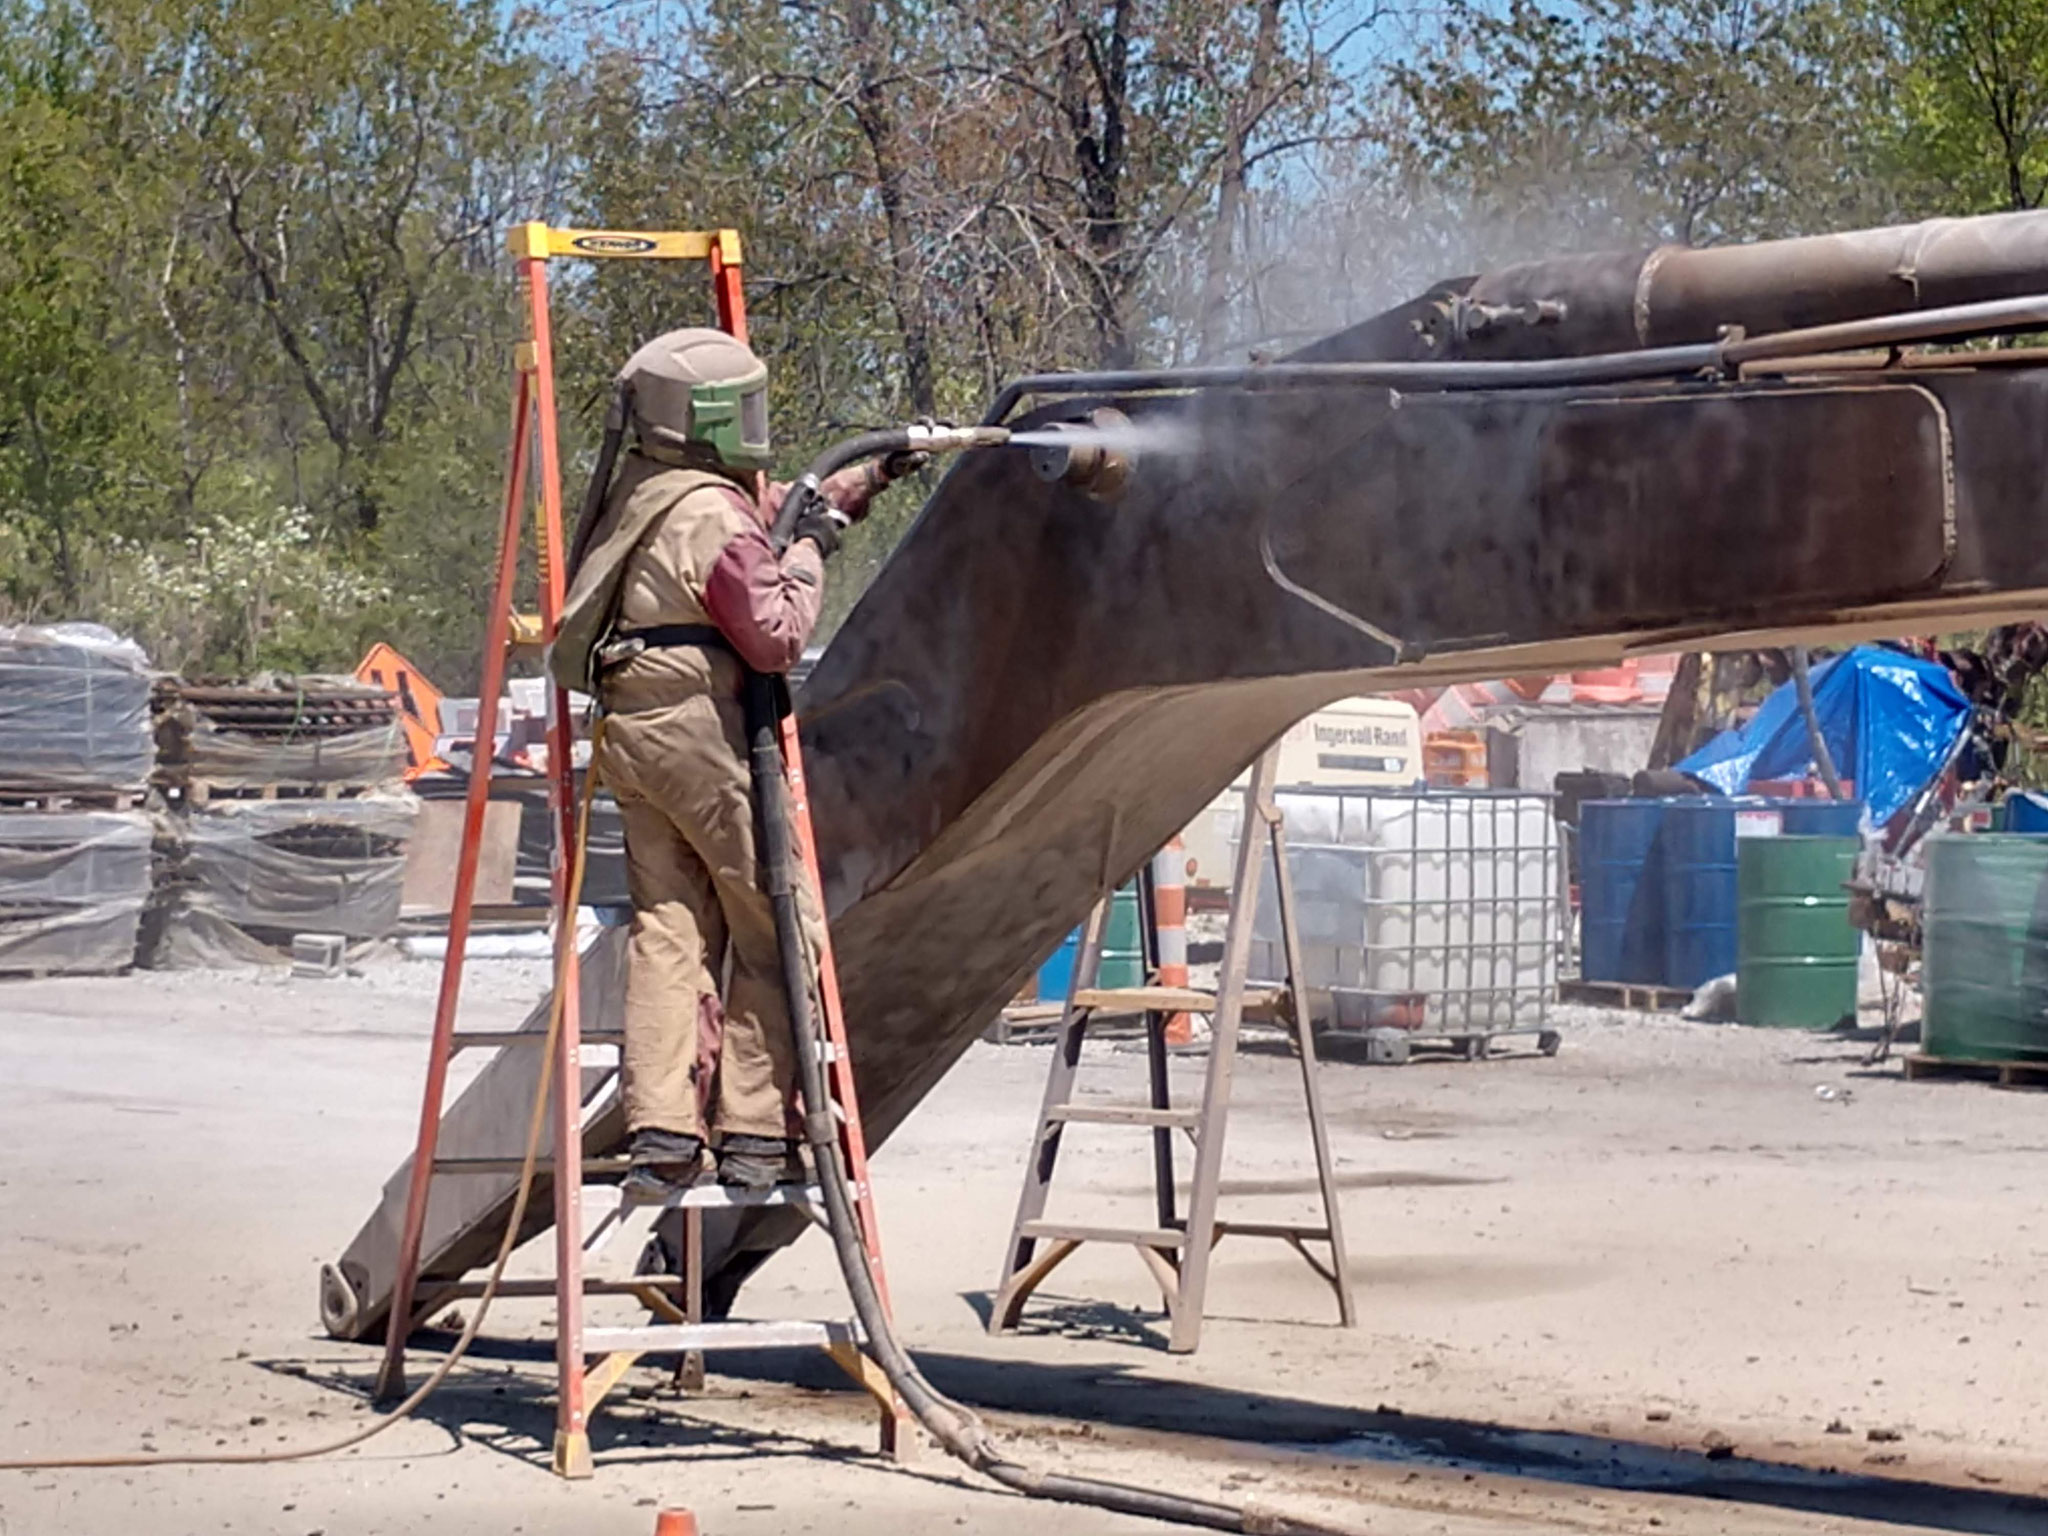 After removing the boom, a mobile sandblaster prepared the steel for painting